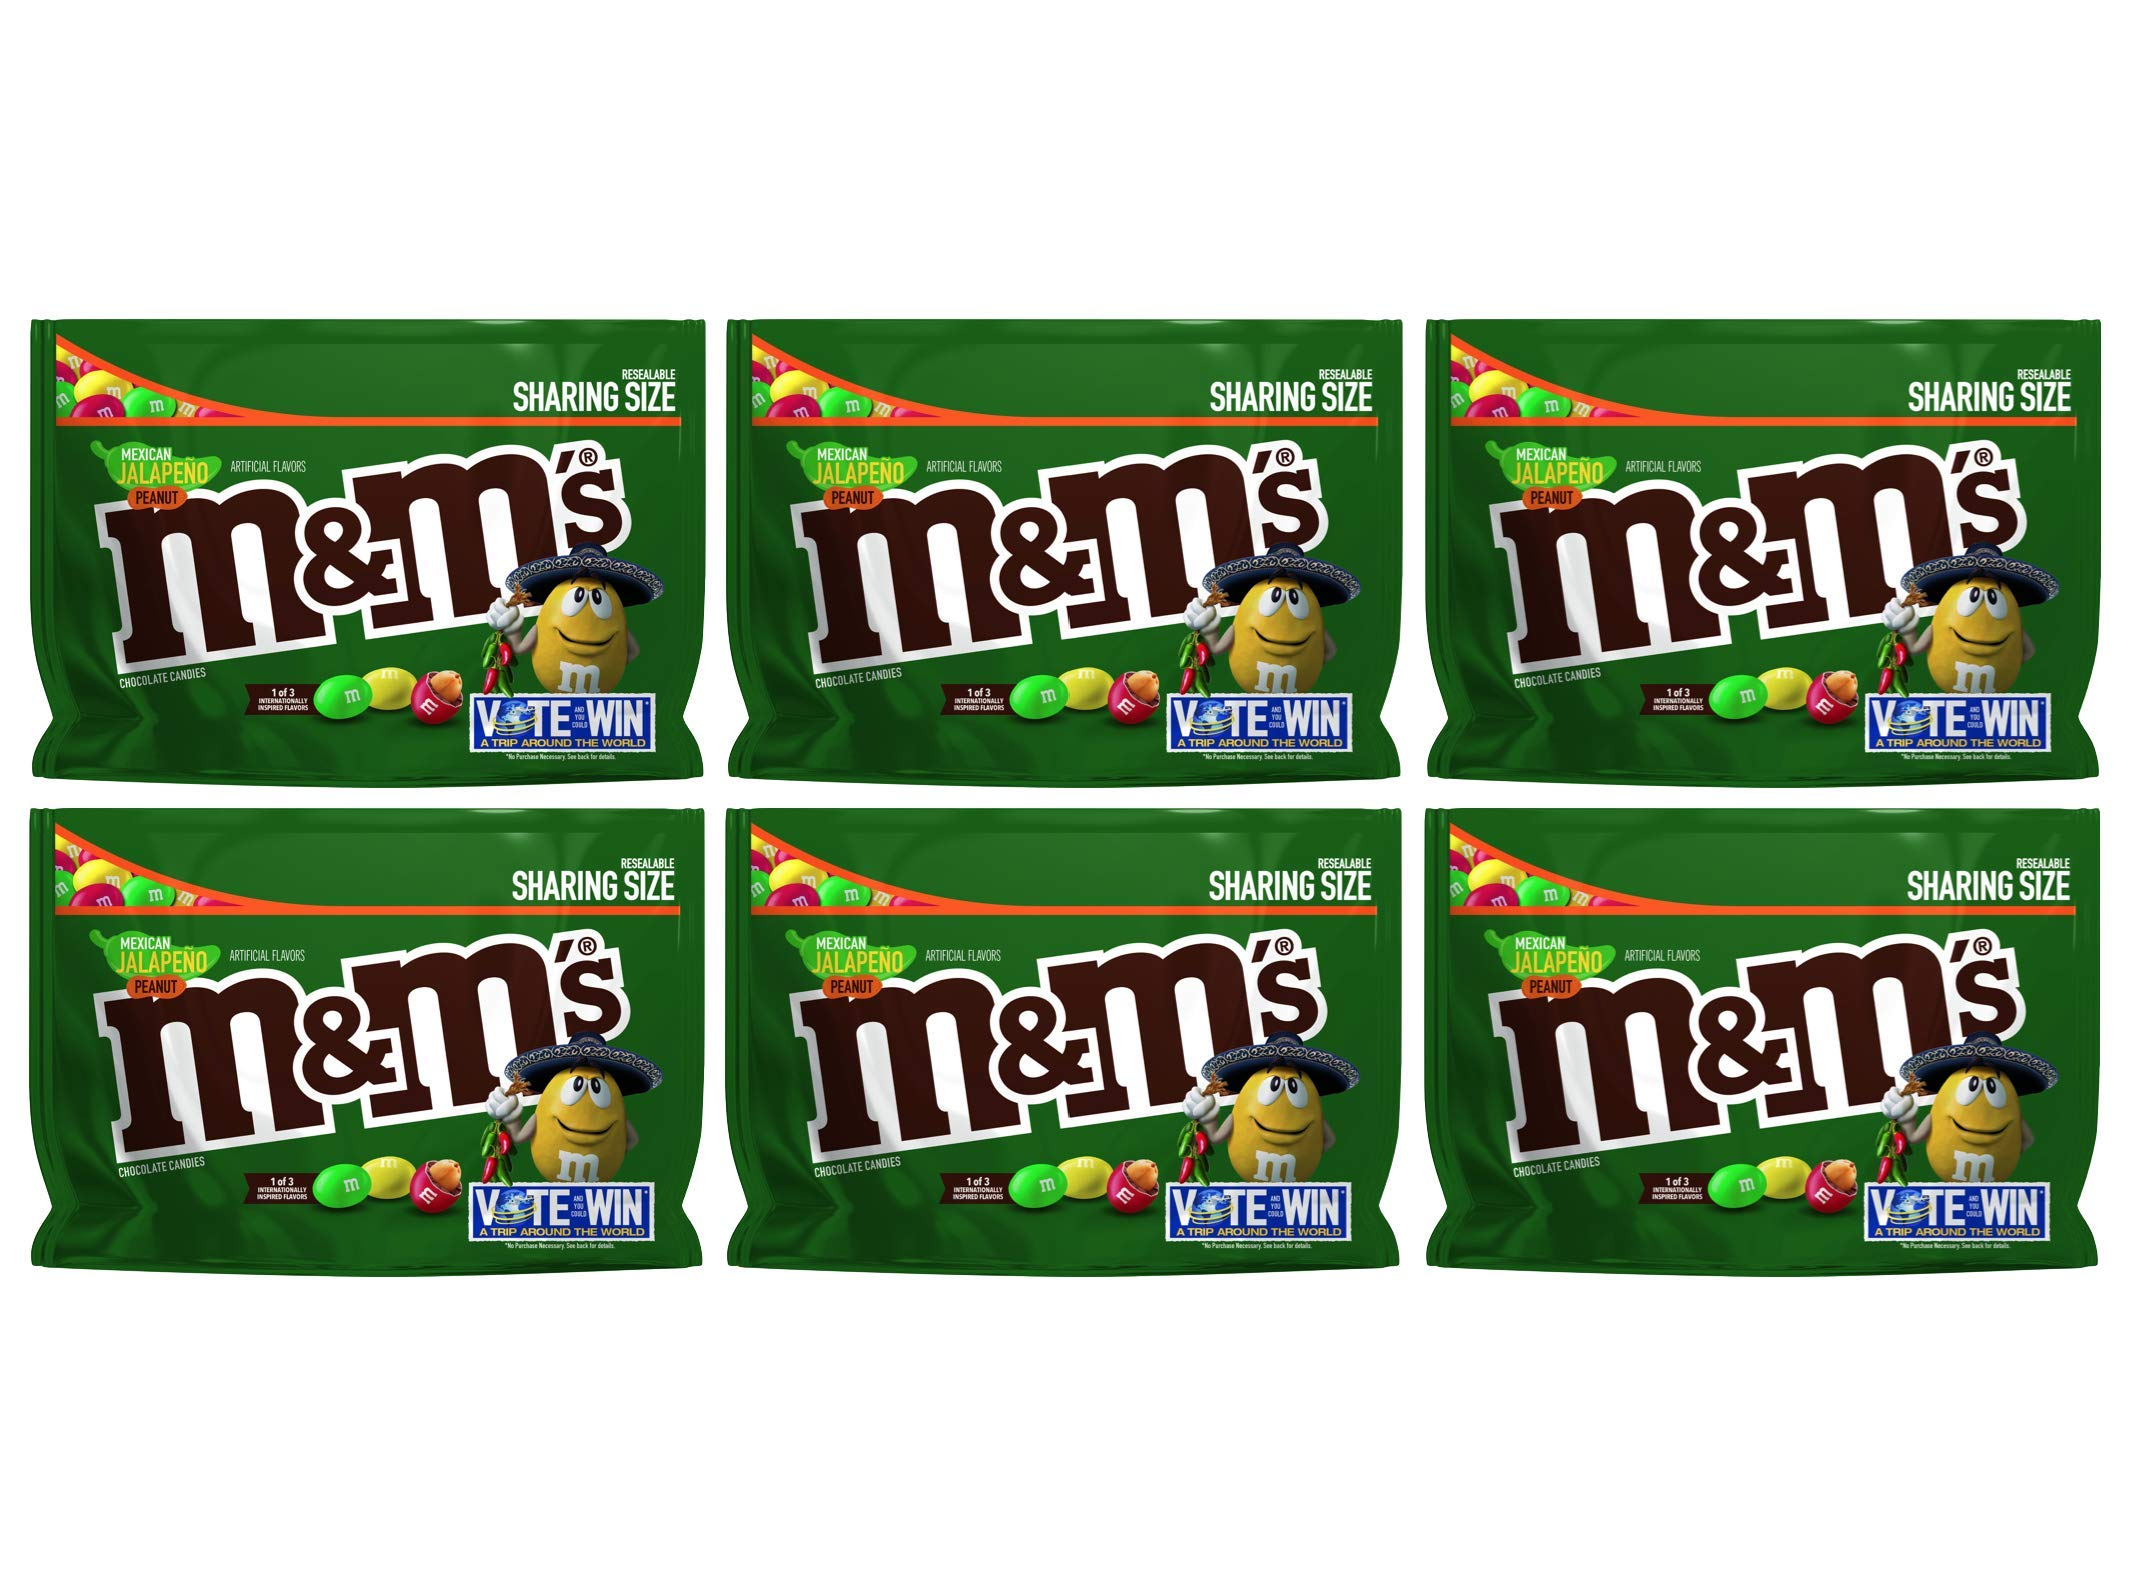 M&M's (Pack of 6) Chocolate Candy Flavor Vote Mexican Jalapeno Peanut Sharing Size, 9.6 Ounce Bag